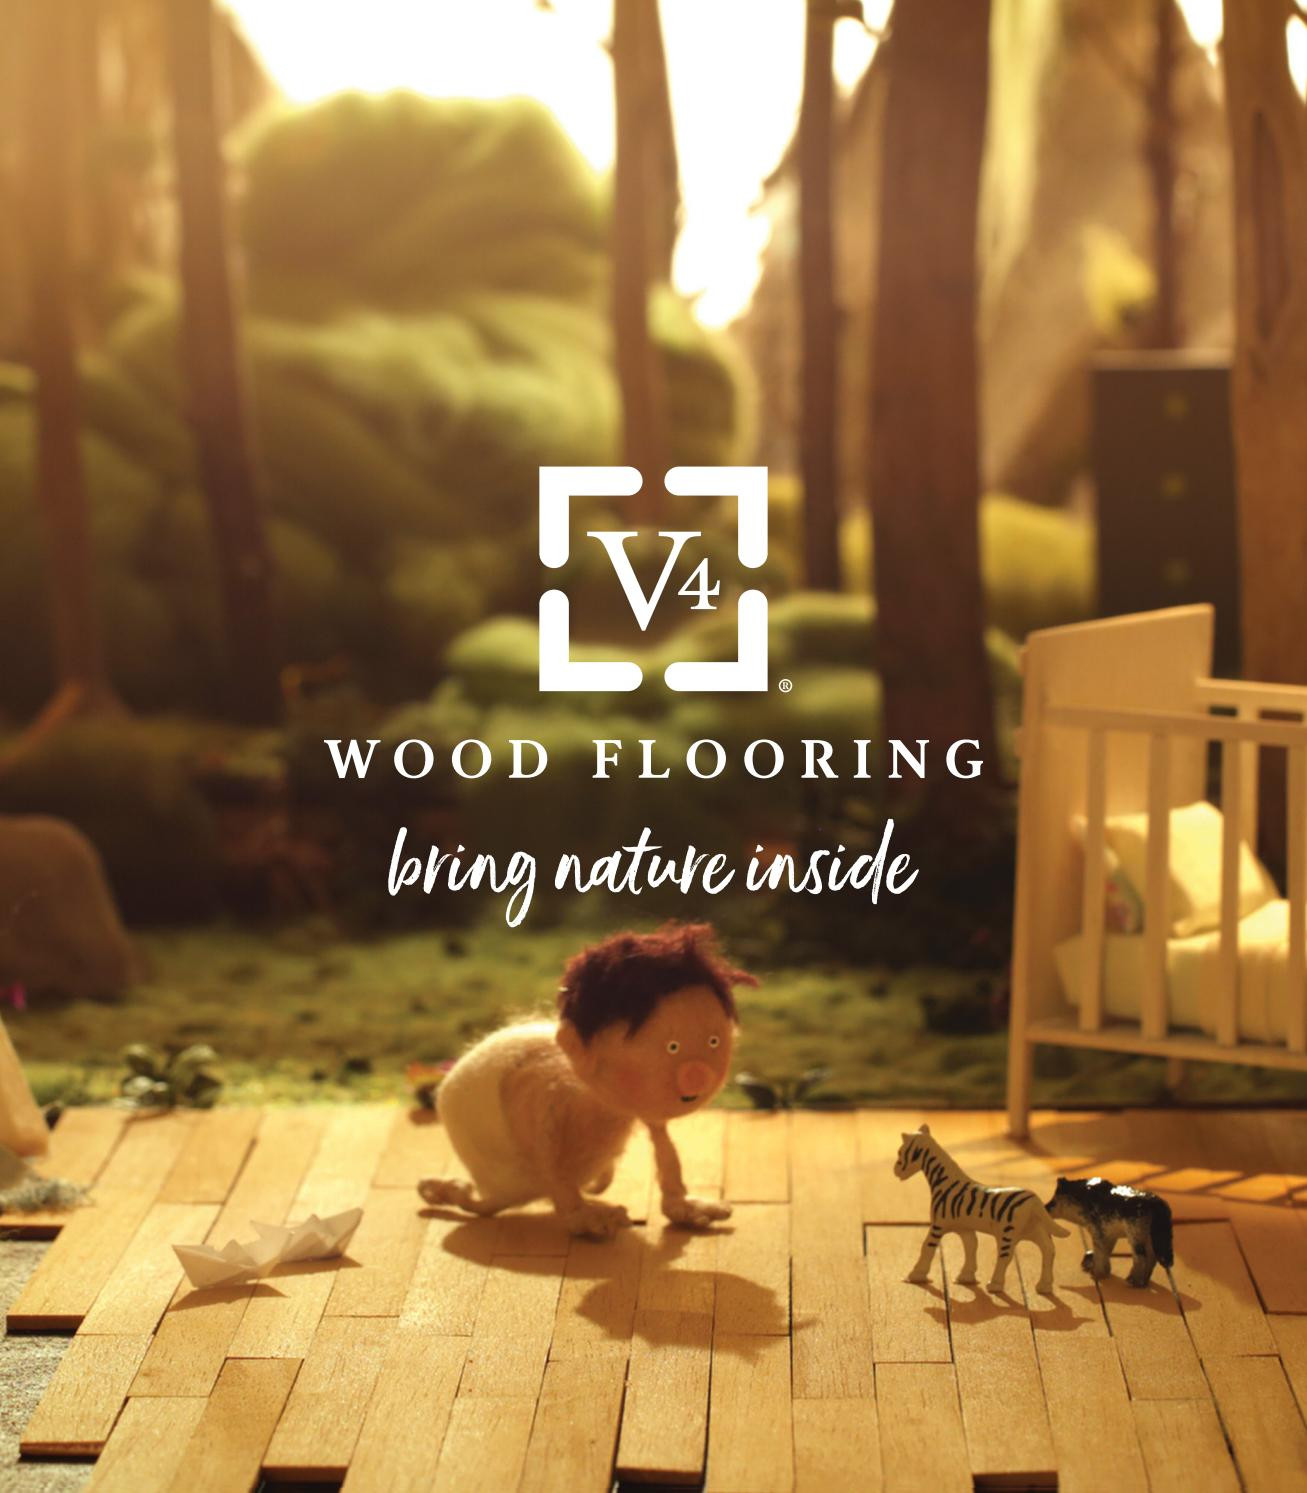 reclaimed hardwood flooring uk of v4 wood flooring spring catalogue 2018 by v4 wood flooring issuu intended for page 1